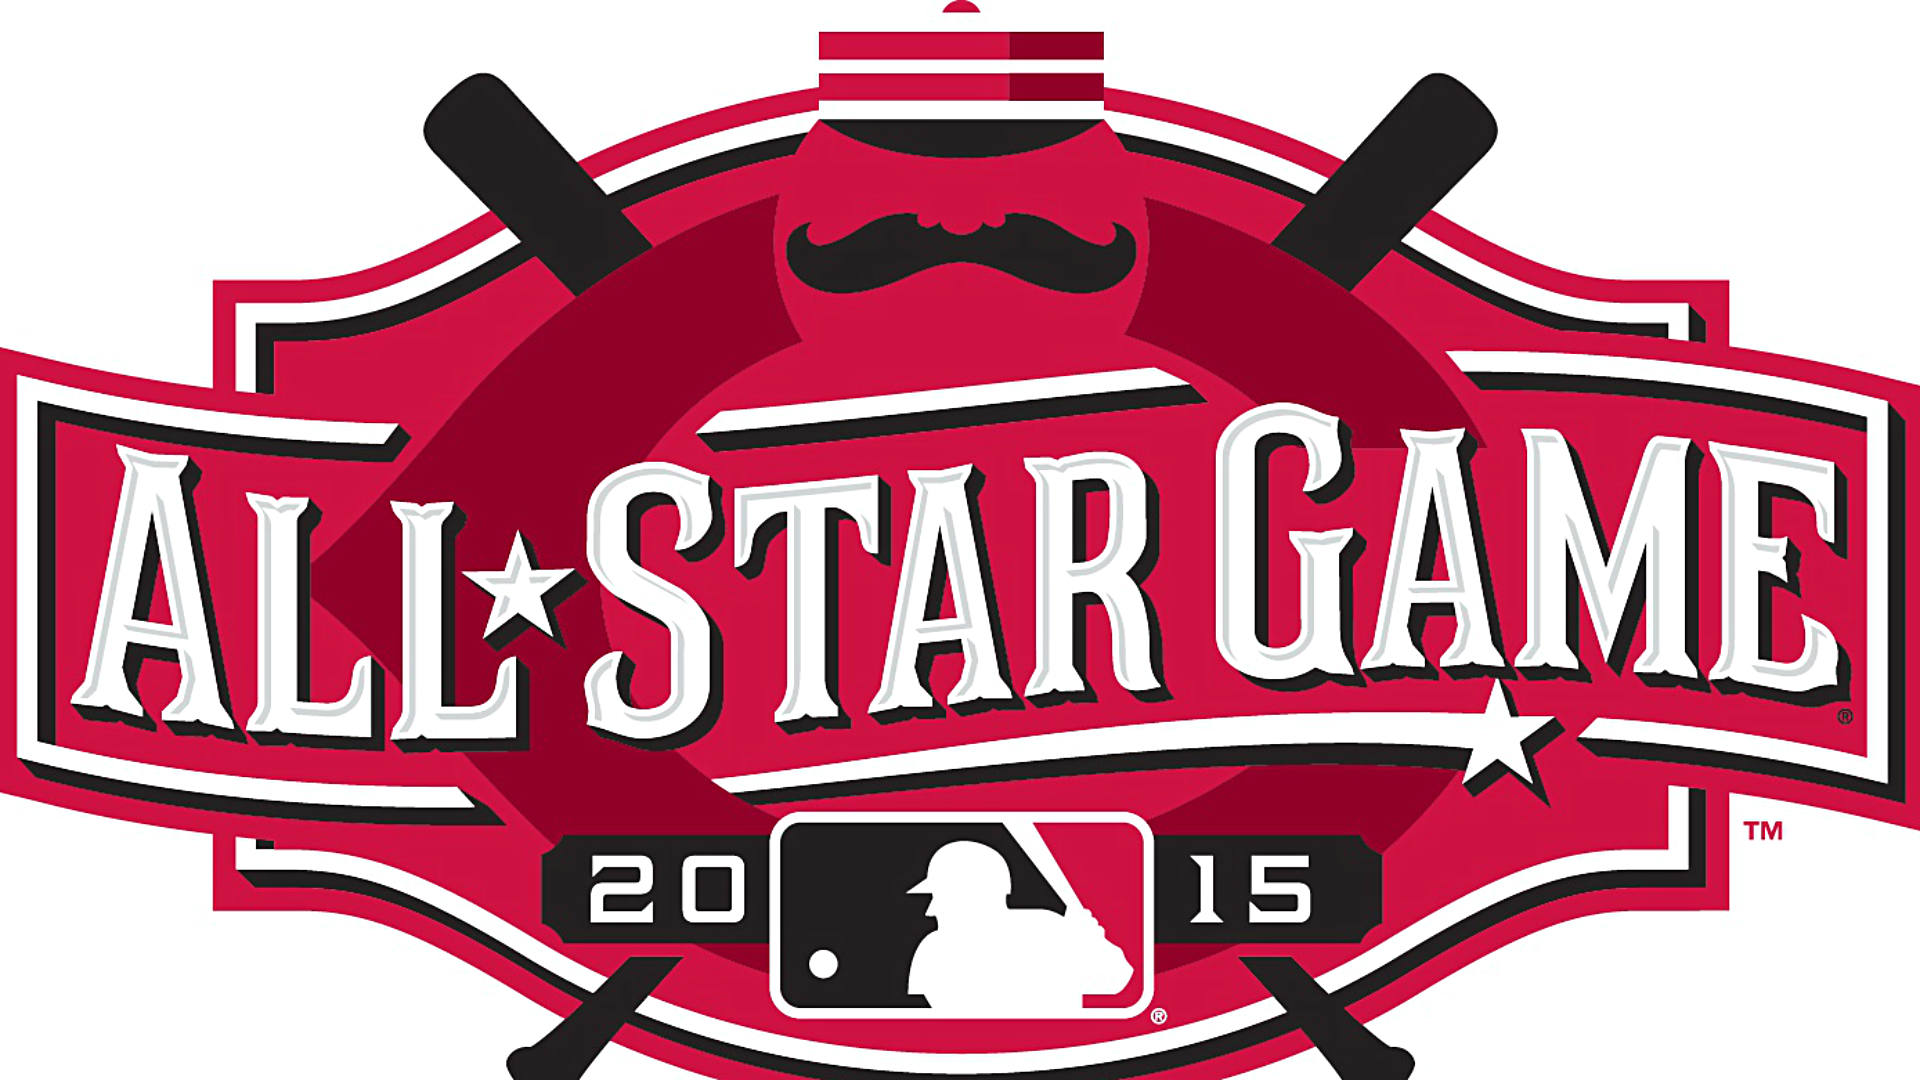 MLB All-Star Game 2015: Starting lineups to be announced Sunday evening